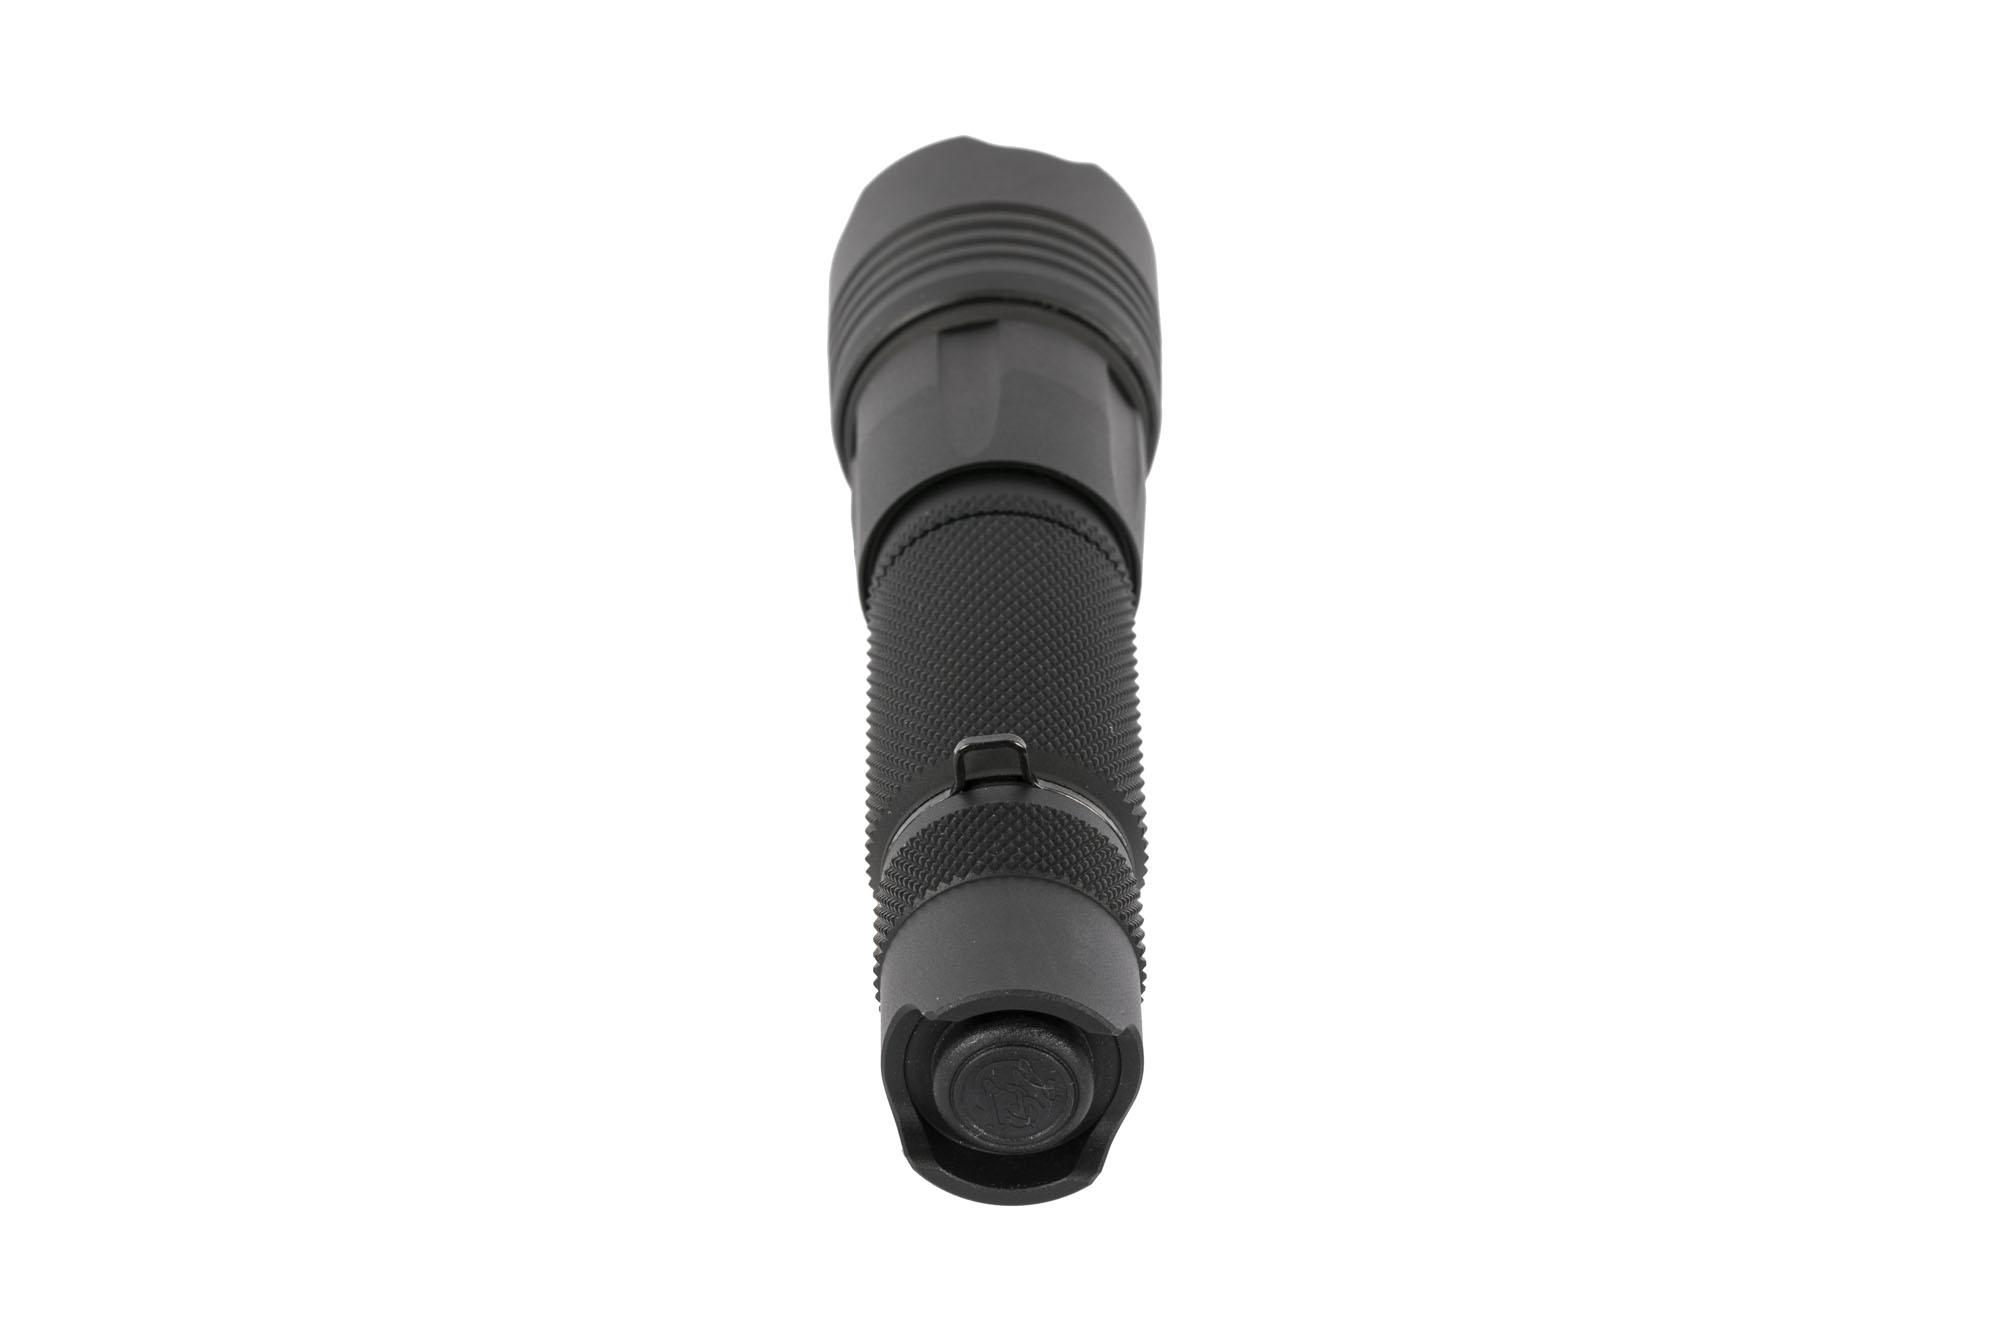 Smith & Wesson M&P 15 Rechargeable Flashlight